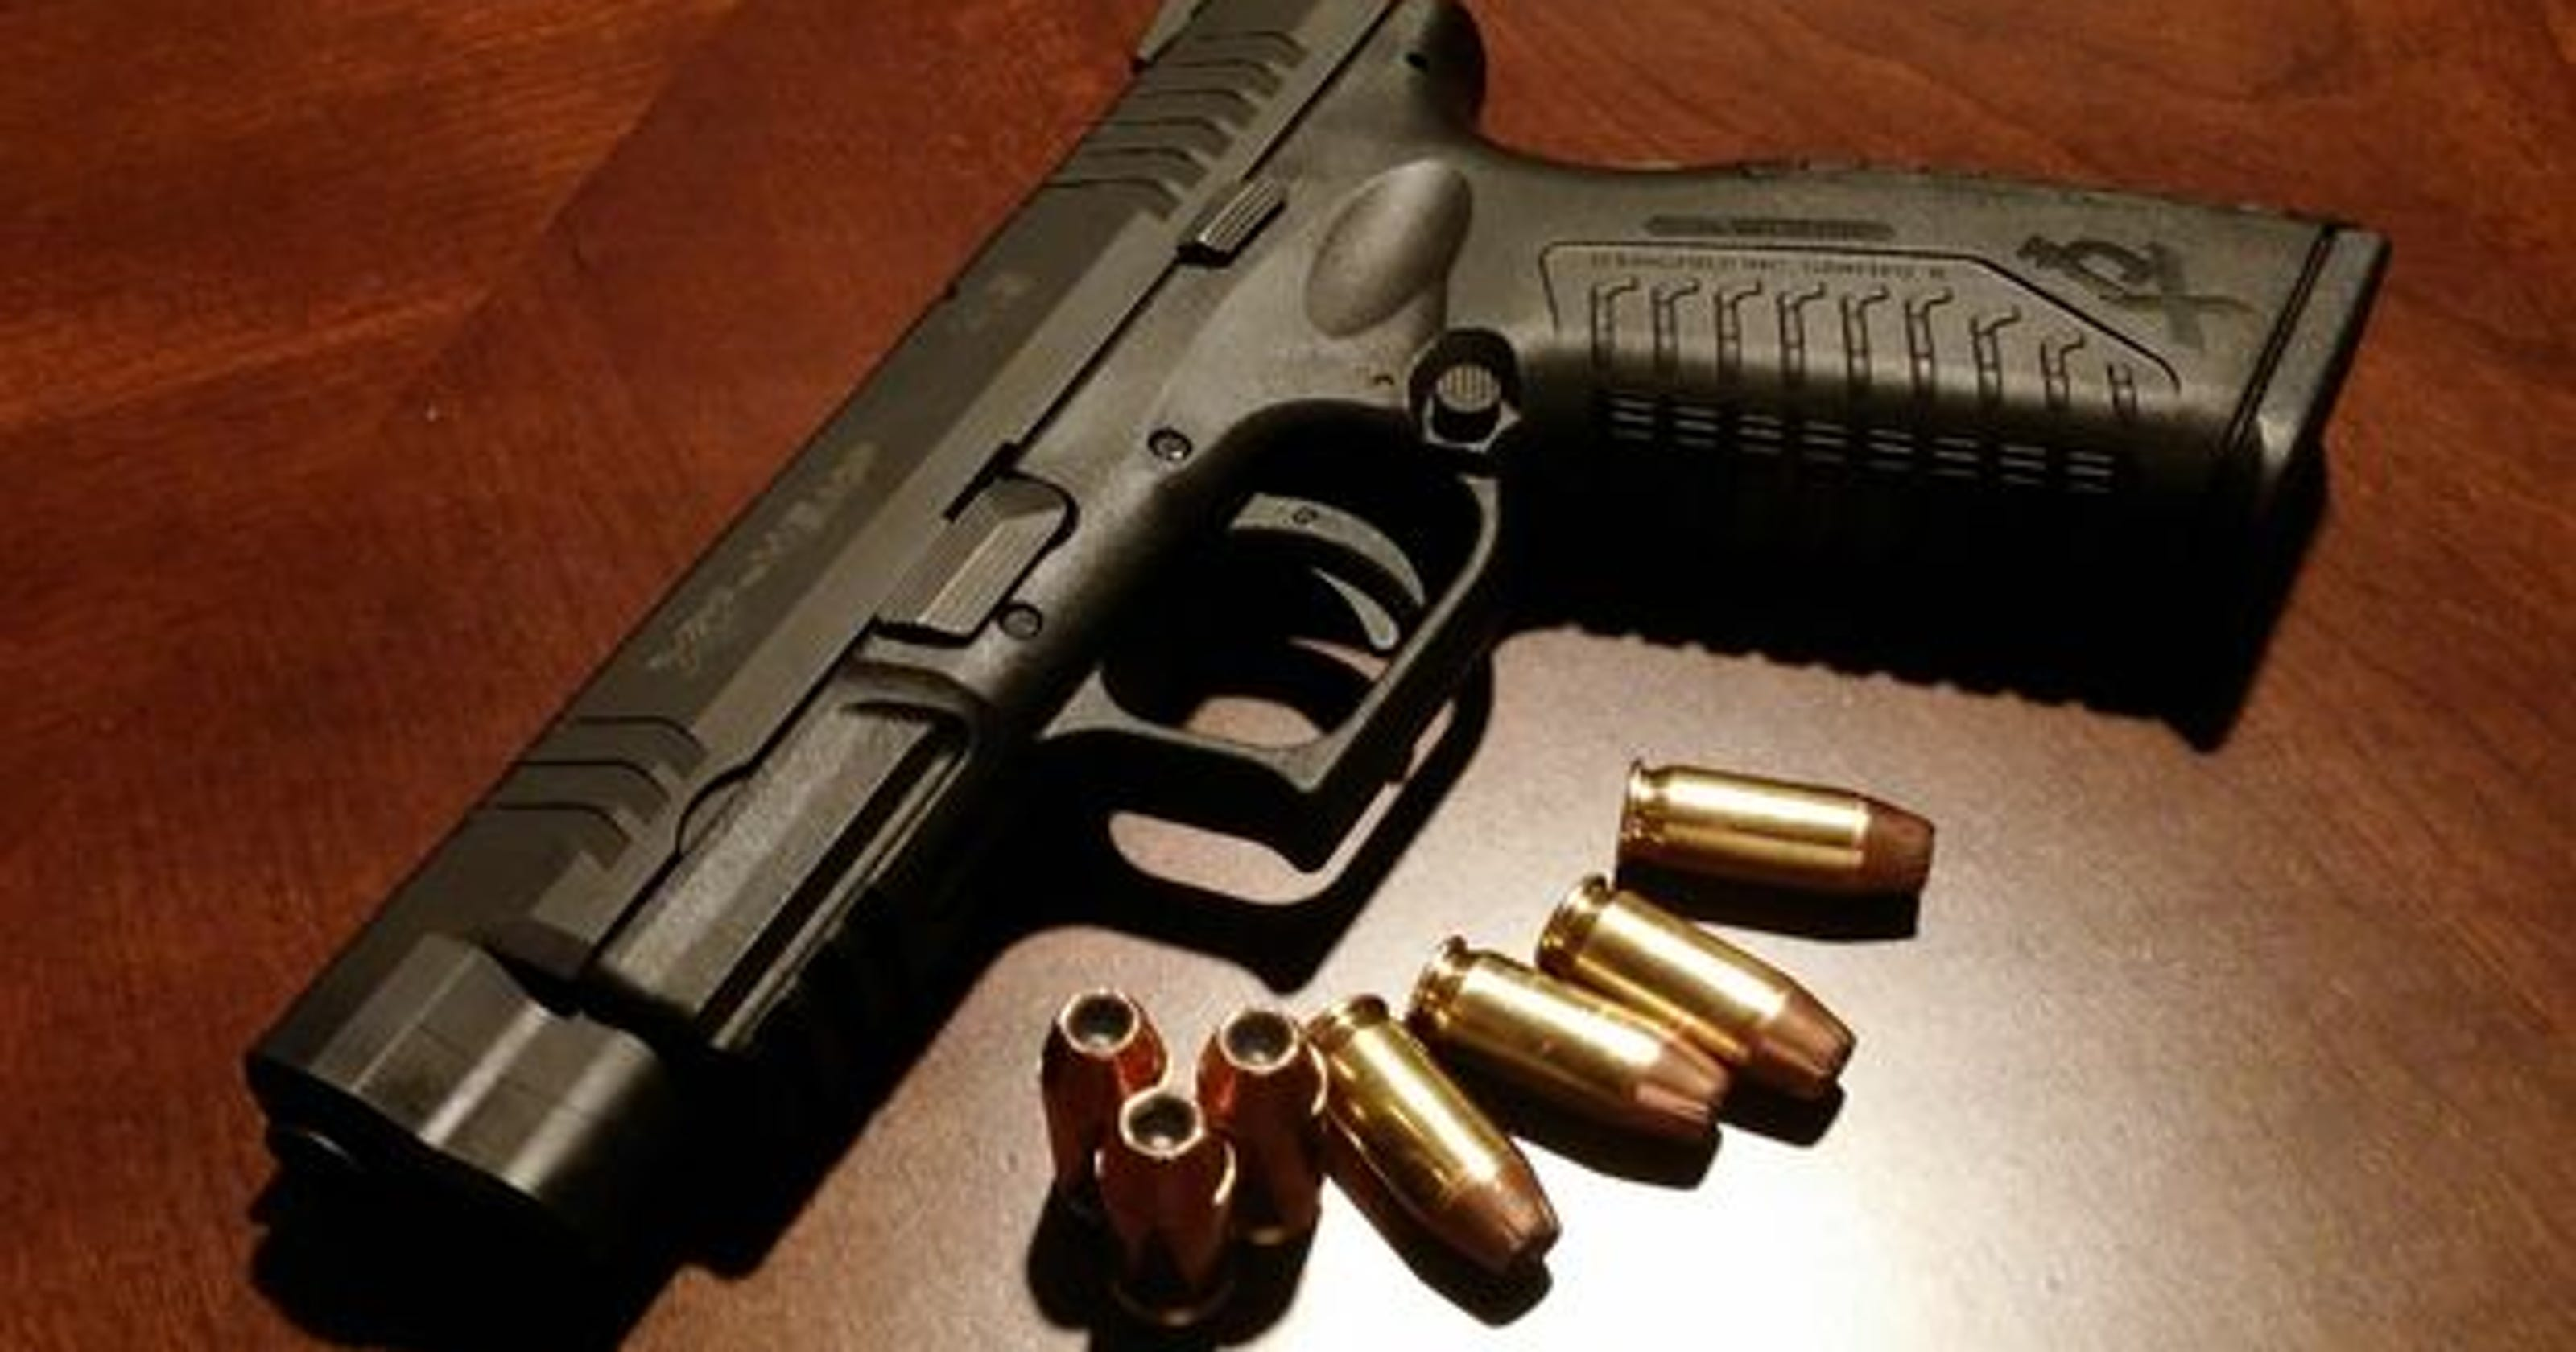 NC leads SC in trials for child shooting accidents